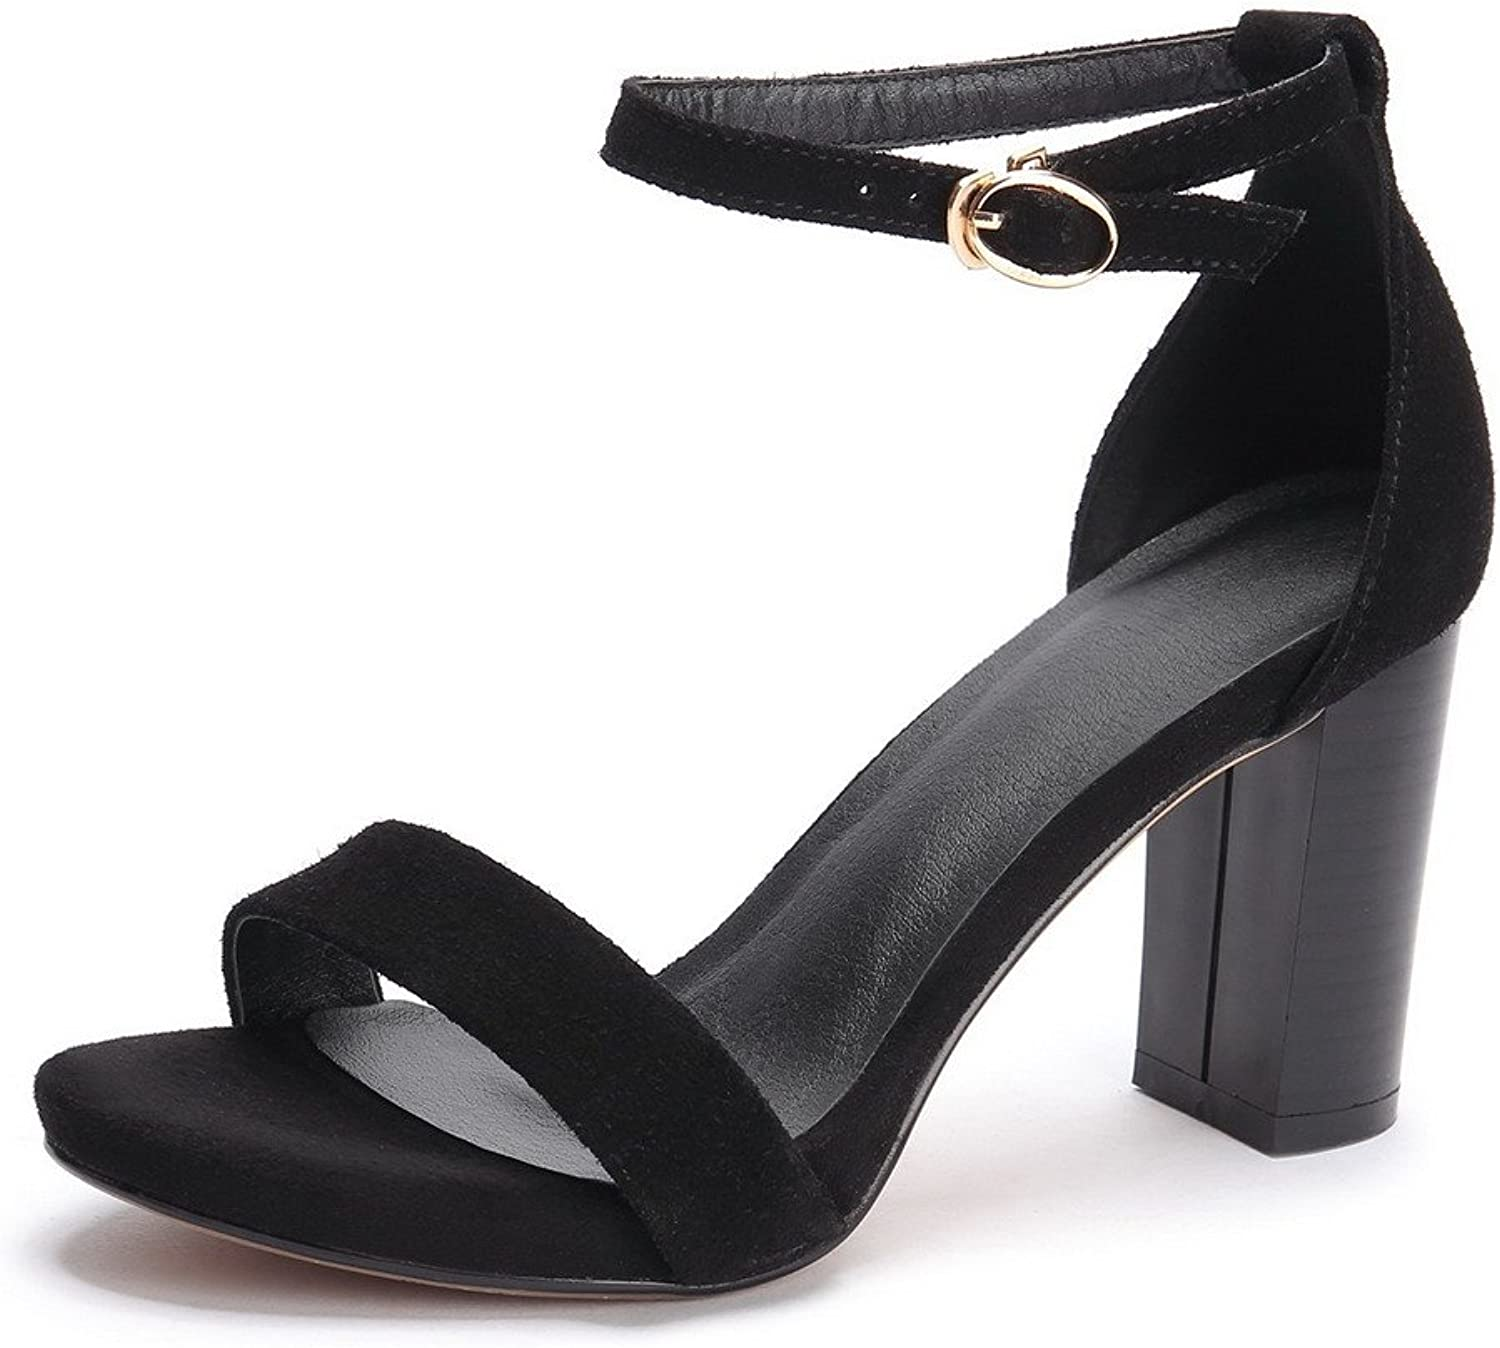 AmoonyFashion Women's Frosted High-Heels Open-Toe Solid Buckle Sandals